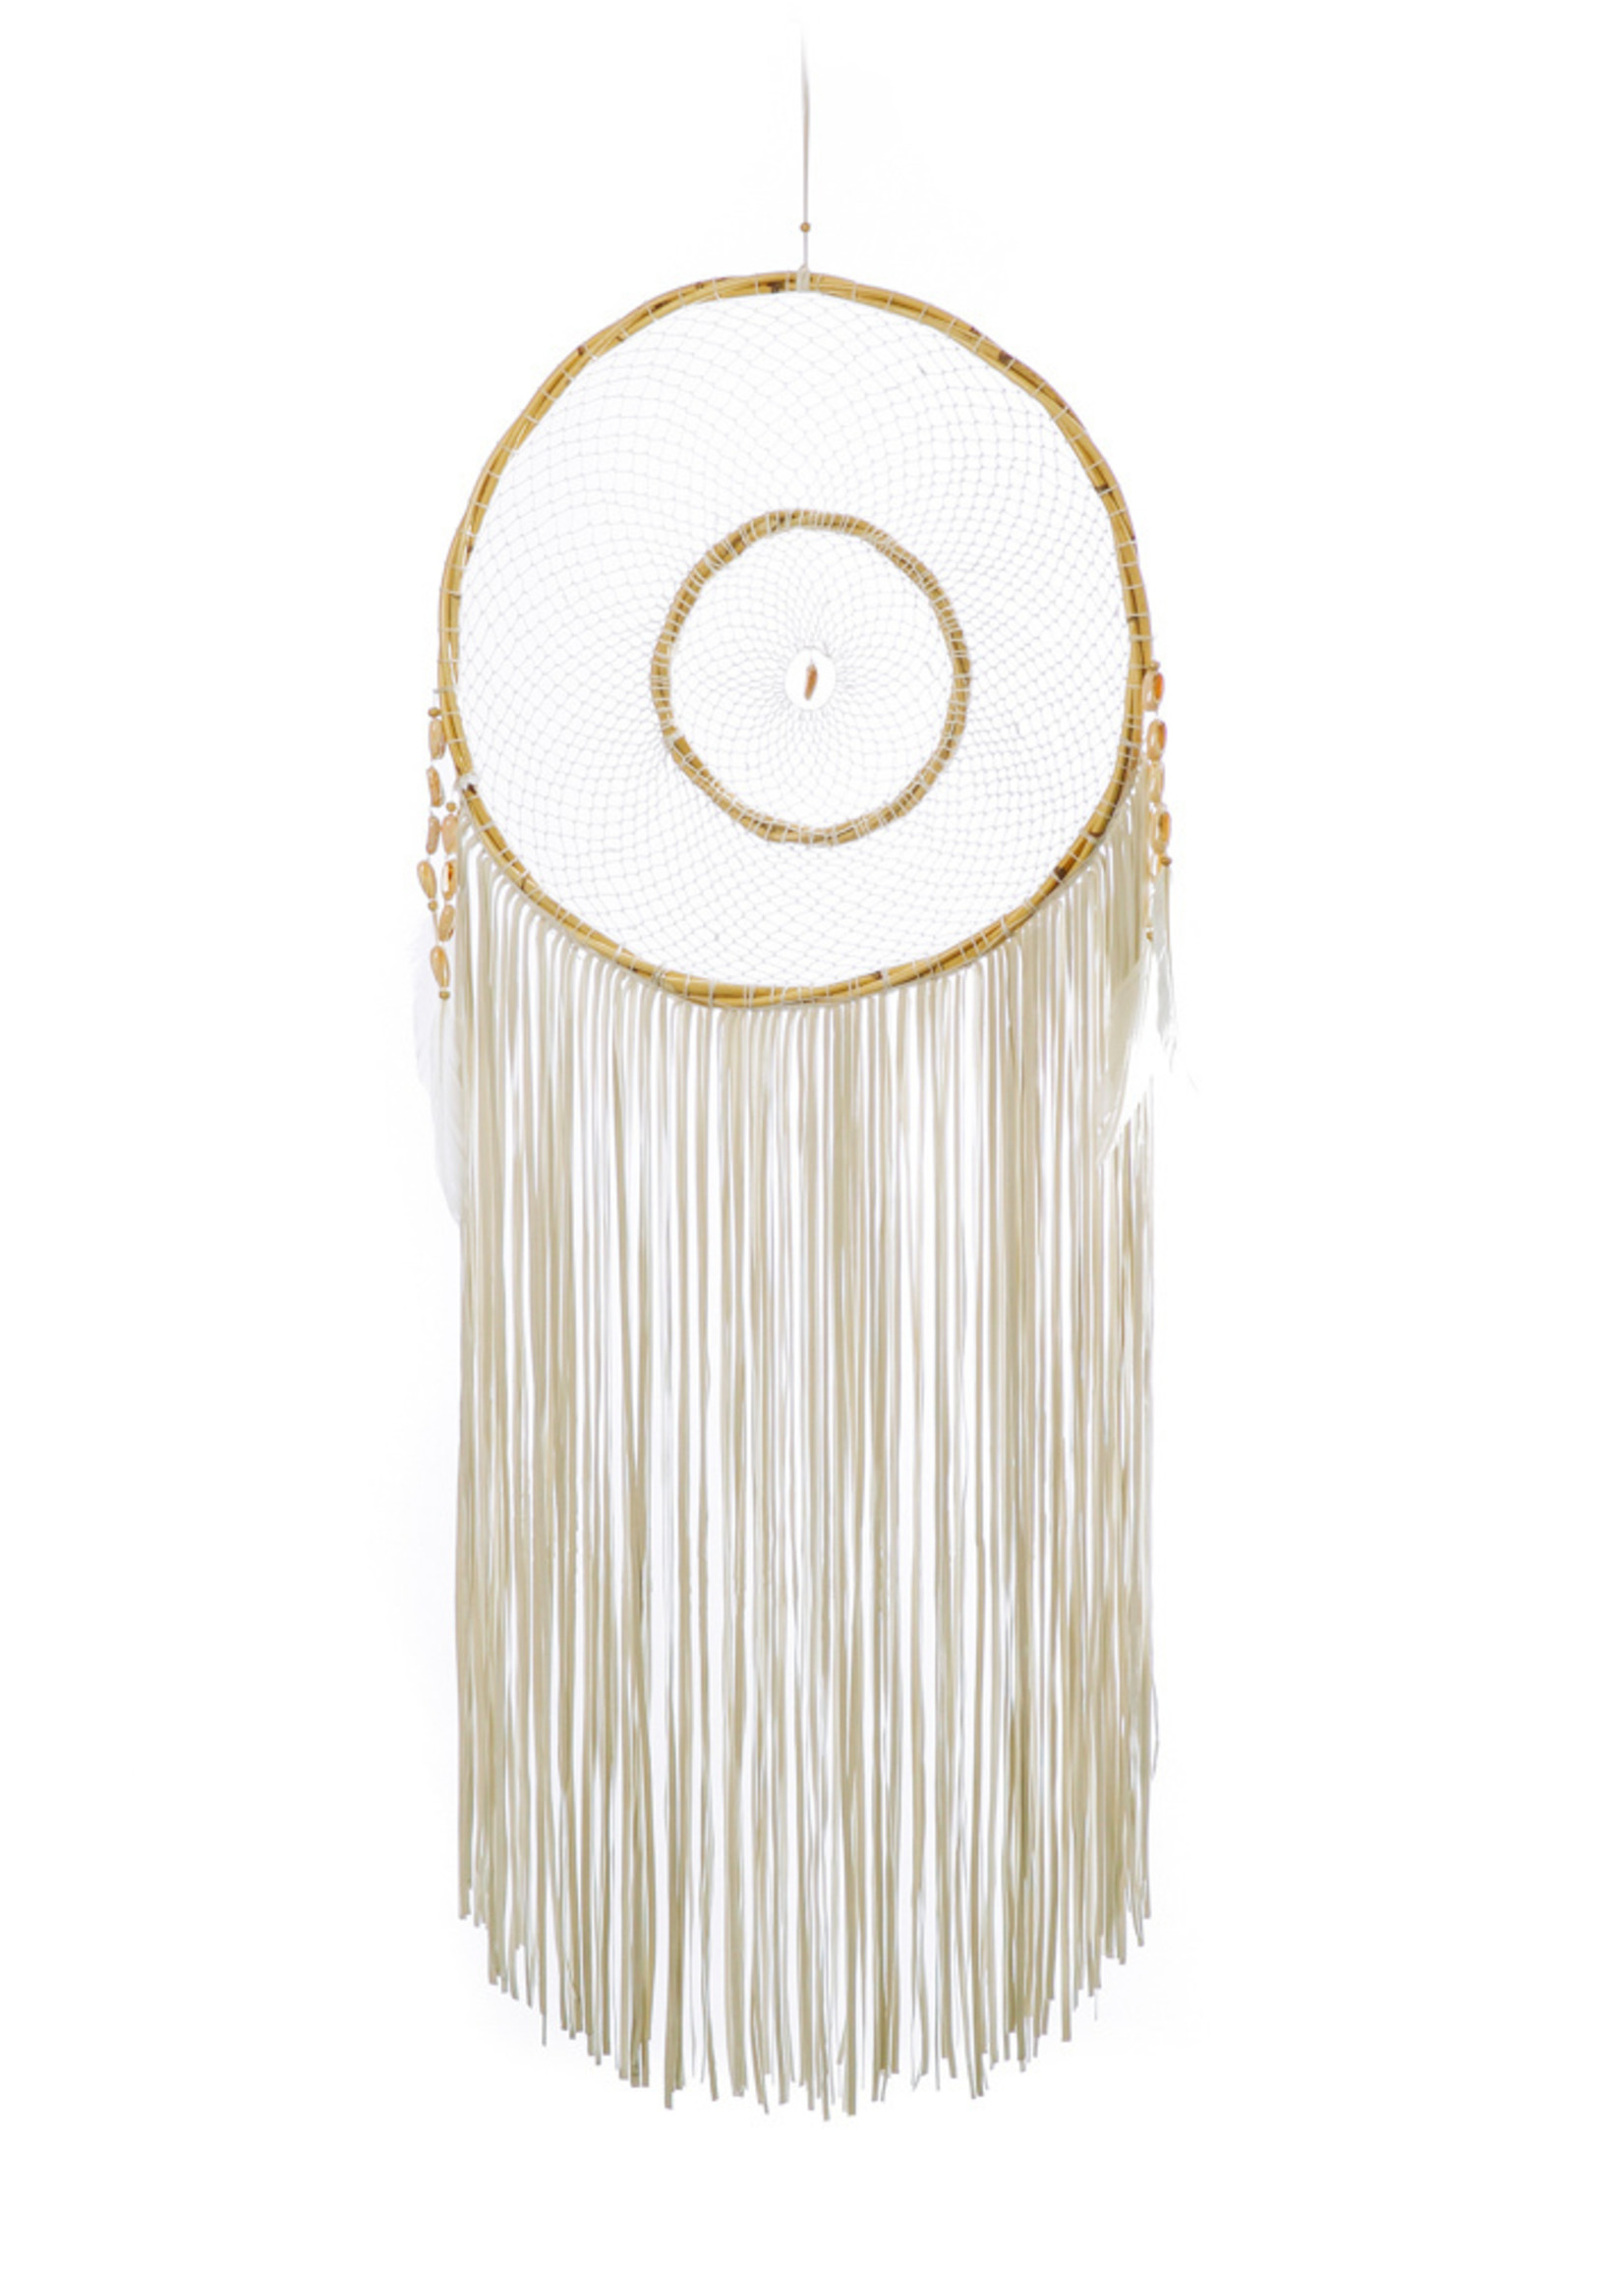 The Tulum Dreamer with Leather Fringes - White